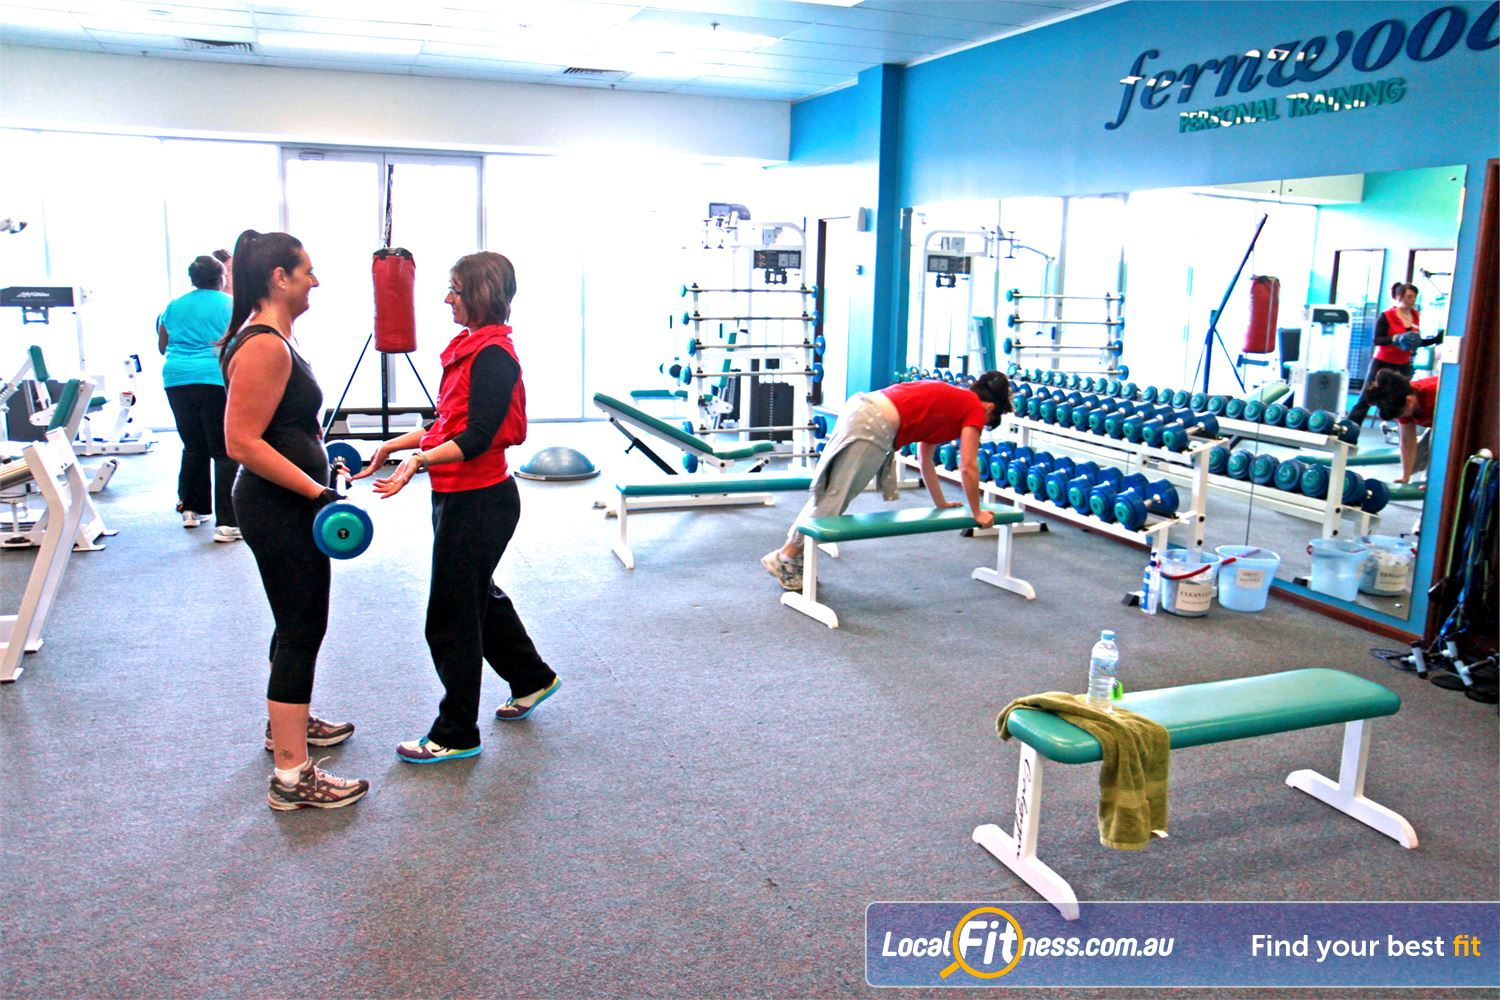 Fernwood Fitness Gungahlin We have the right Gungahlin gym equipment to help with women's weight loss and strength.